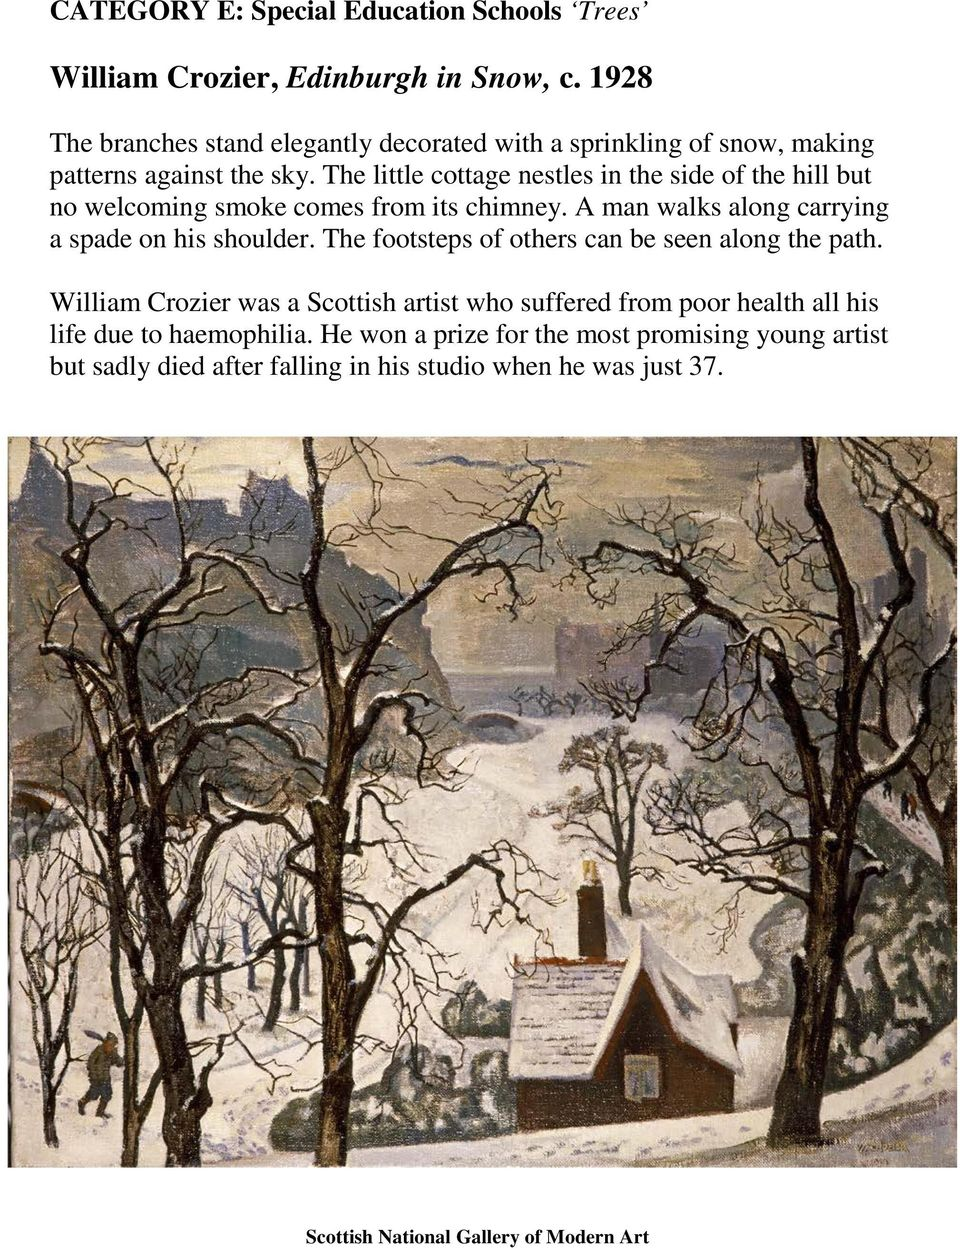 The little cottage nestles in the side of the hill but no welcoming smoke comes from its chimney. A man walks along carrying a spade on his shoulder.